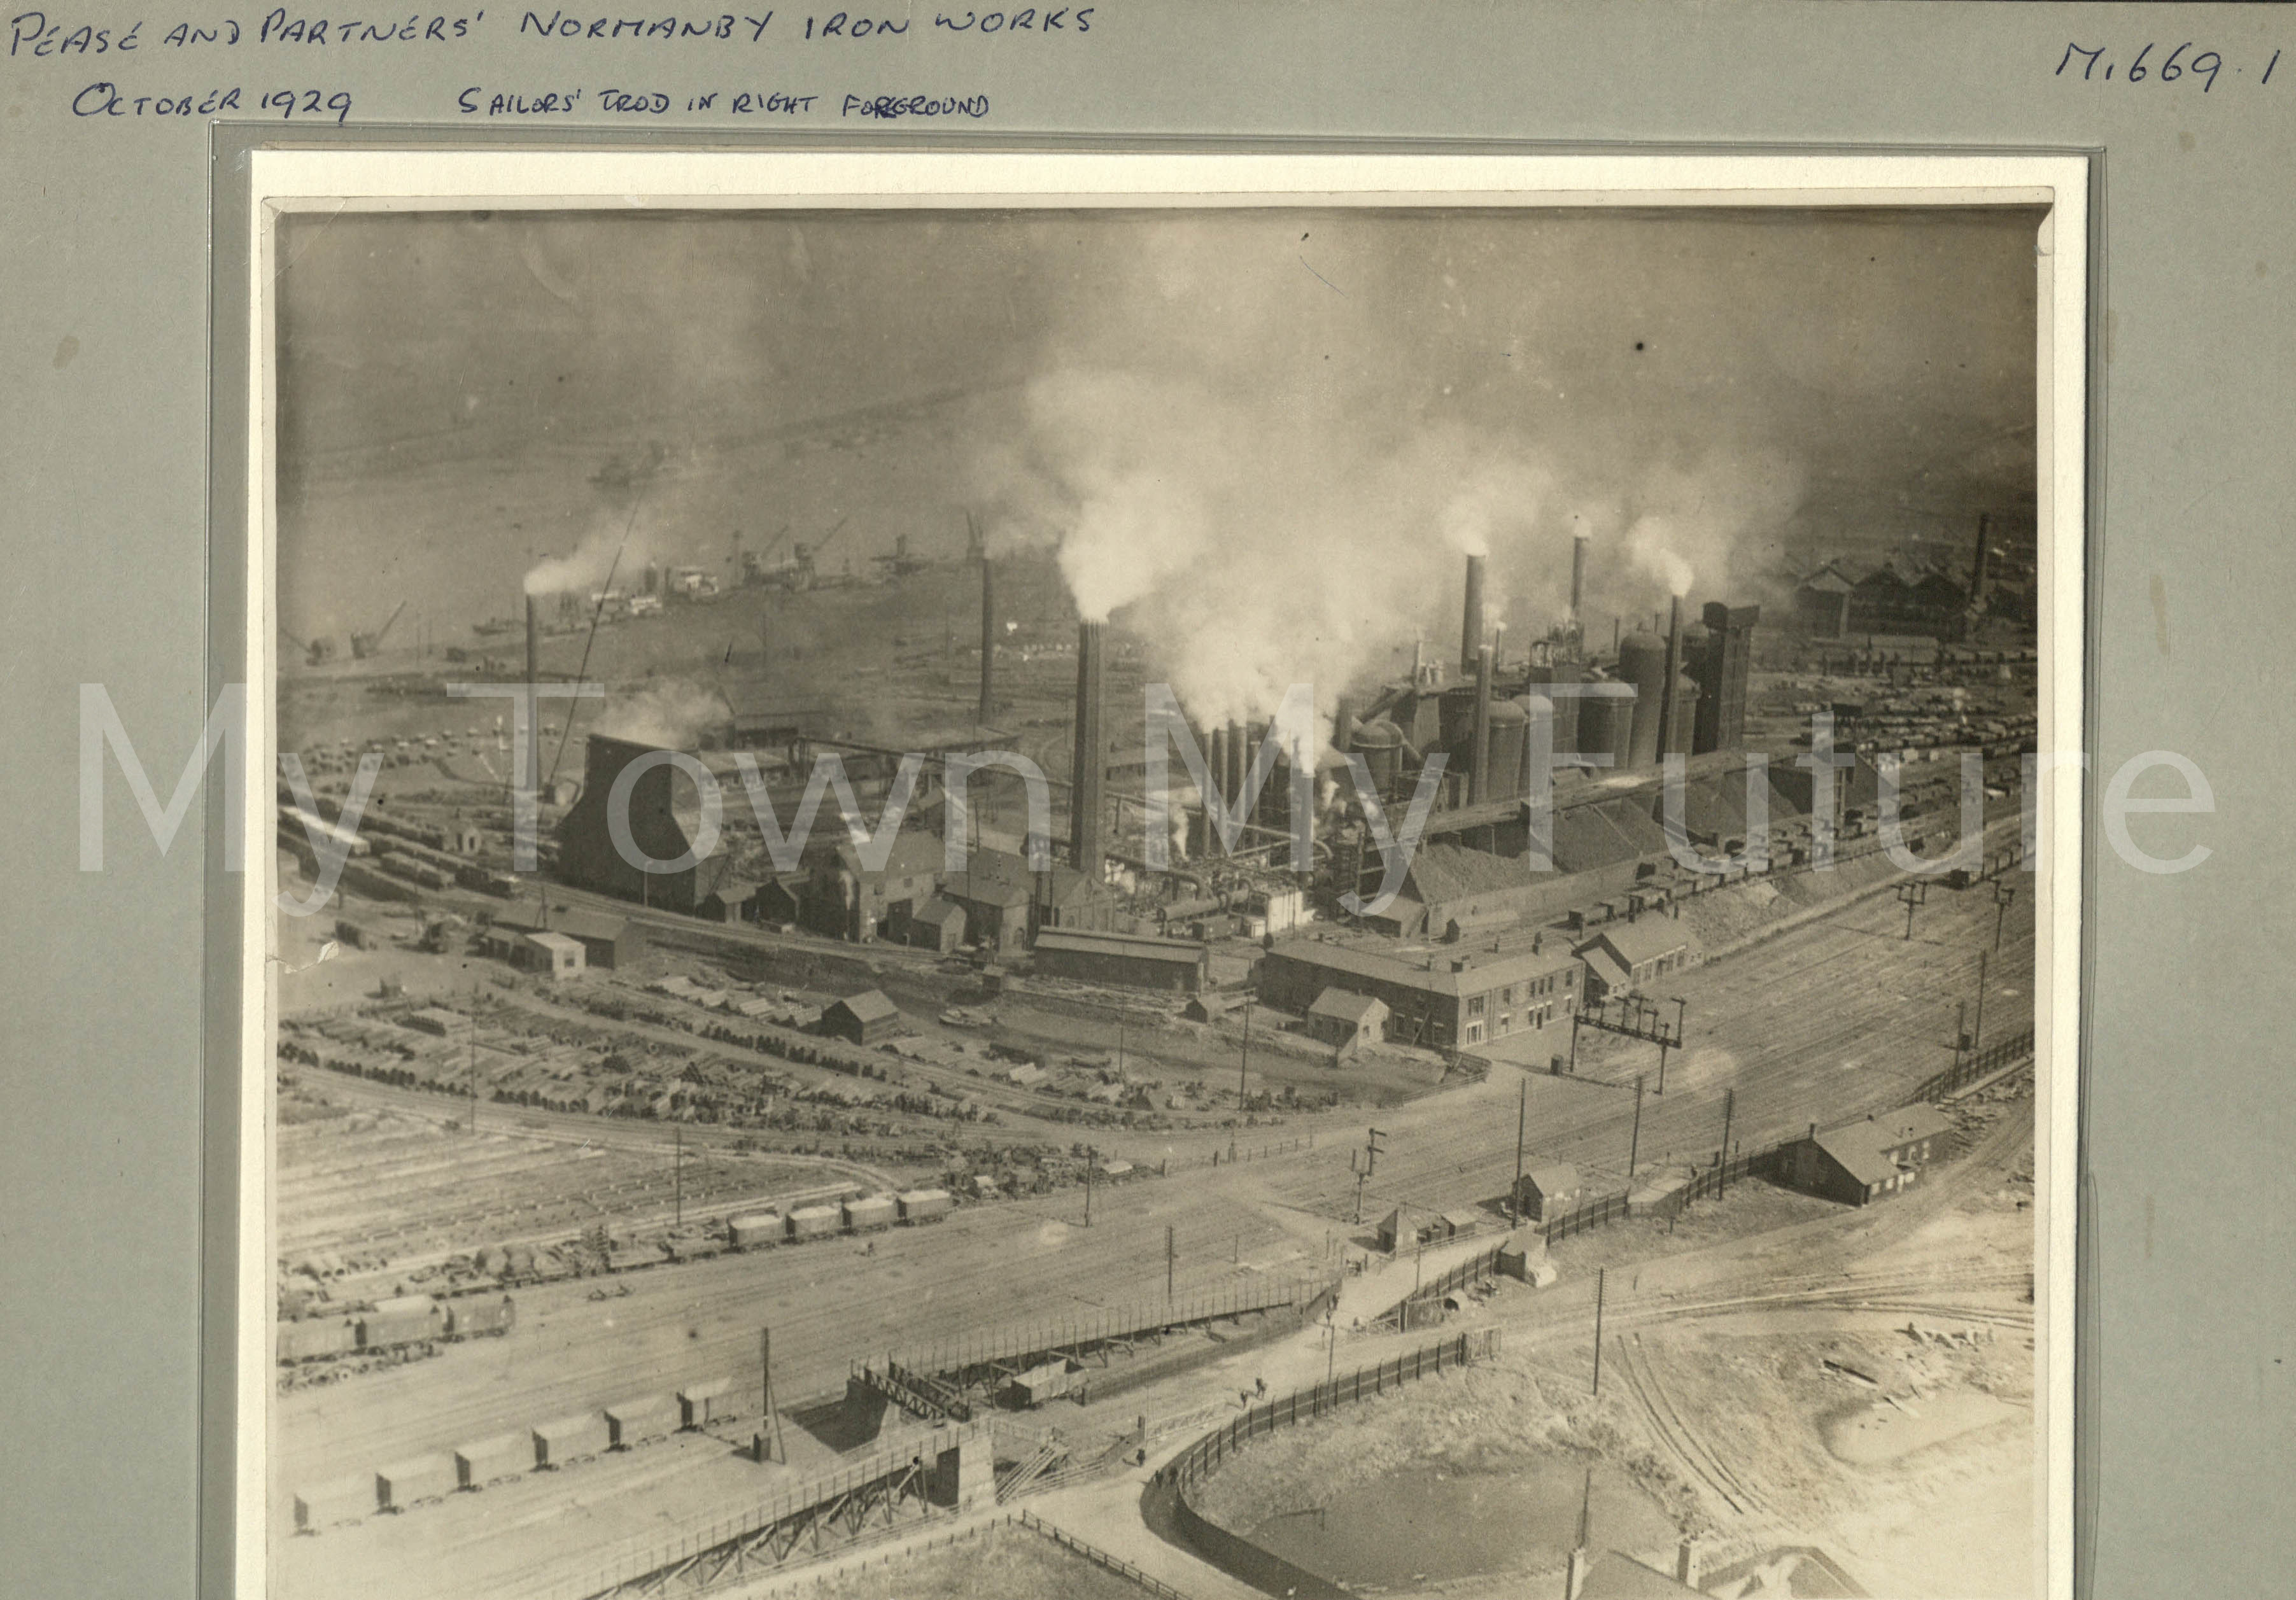 Normanby Ironworks